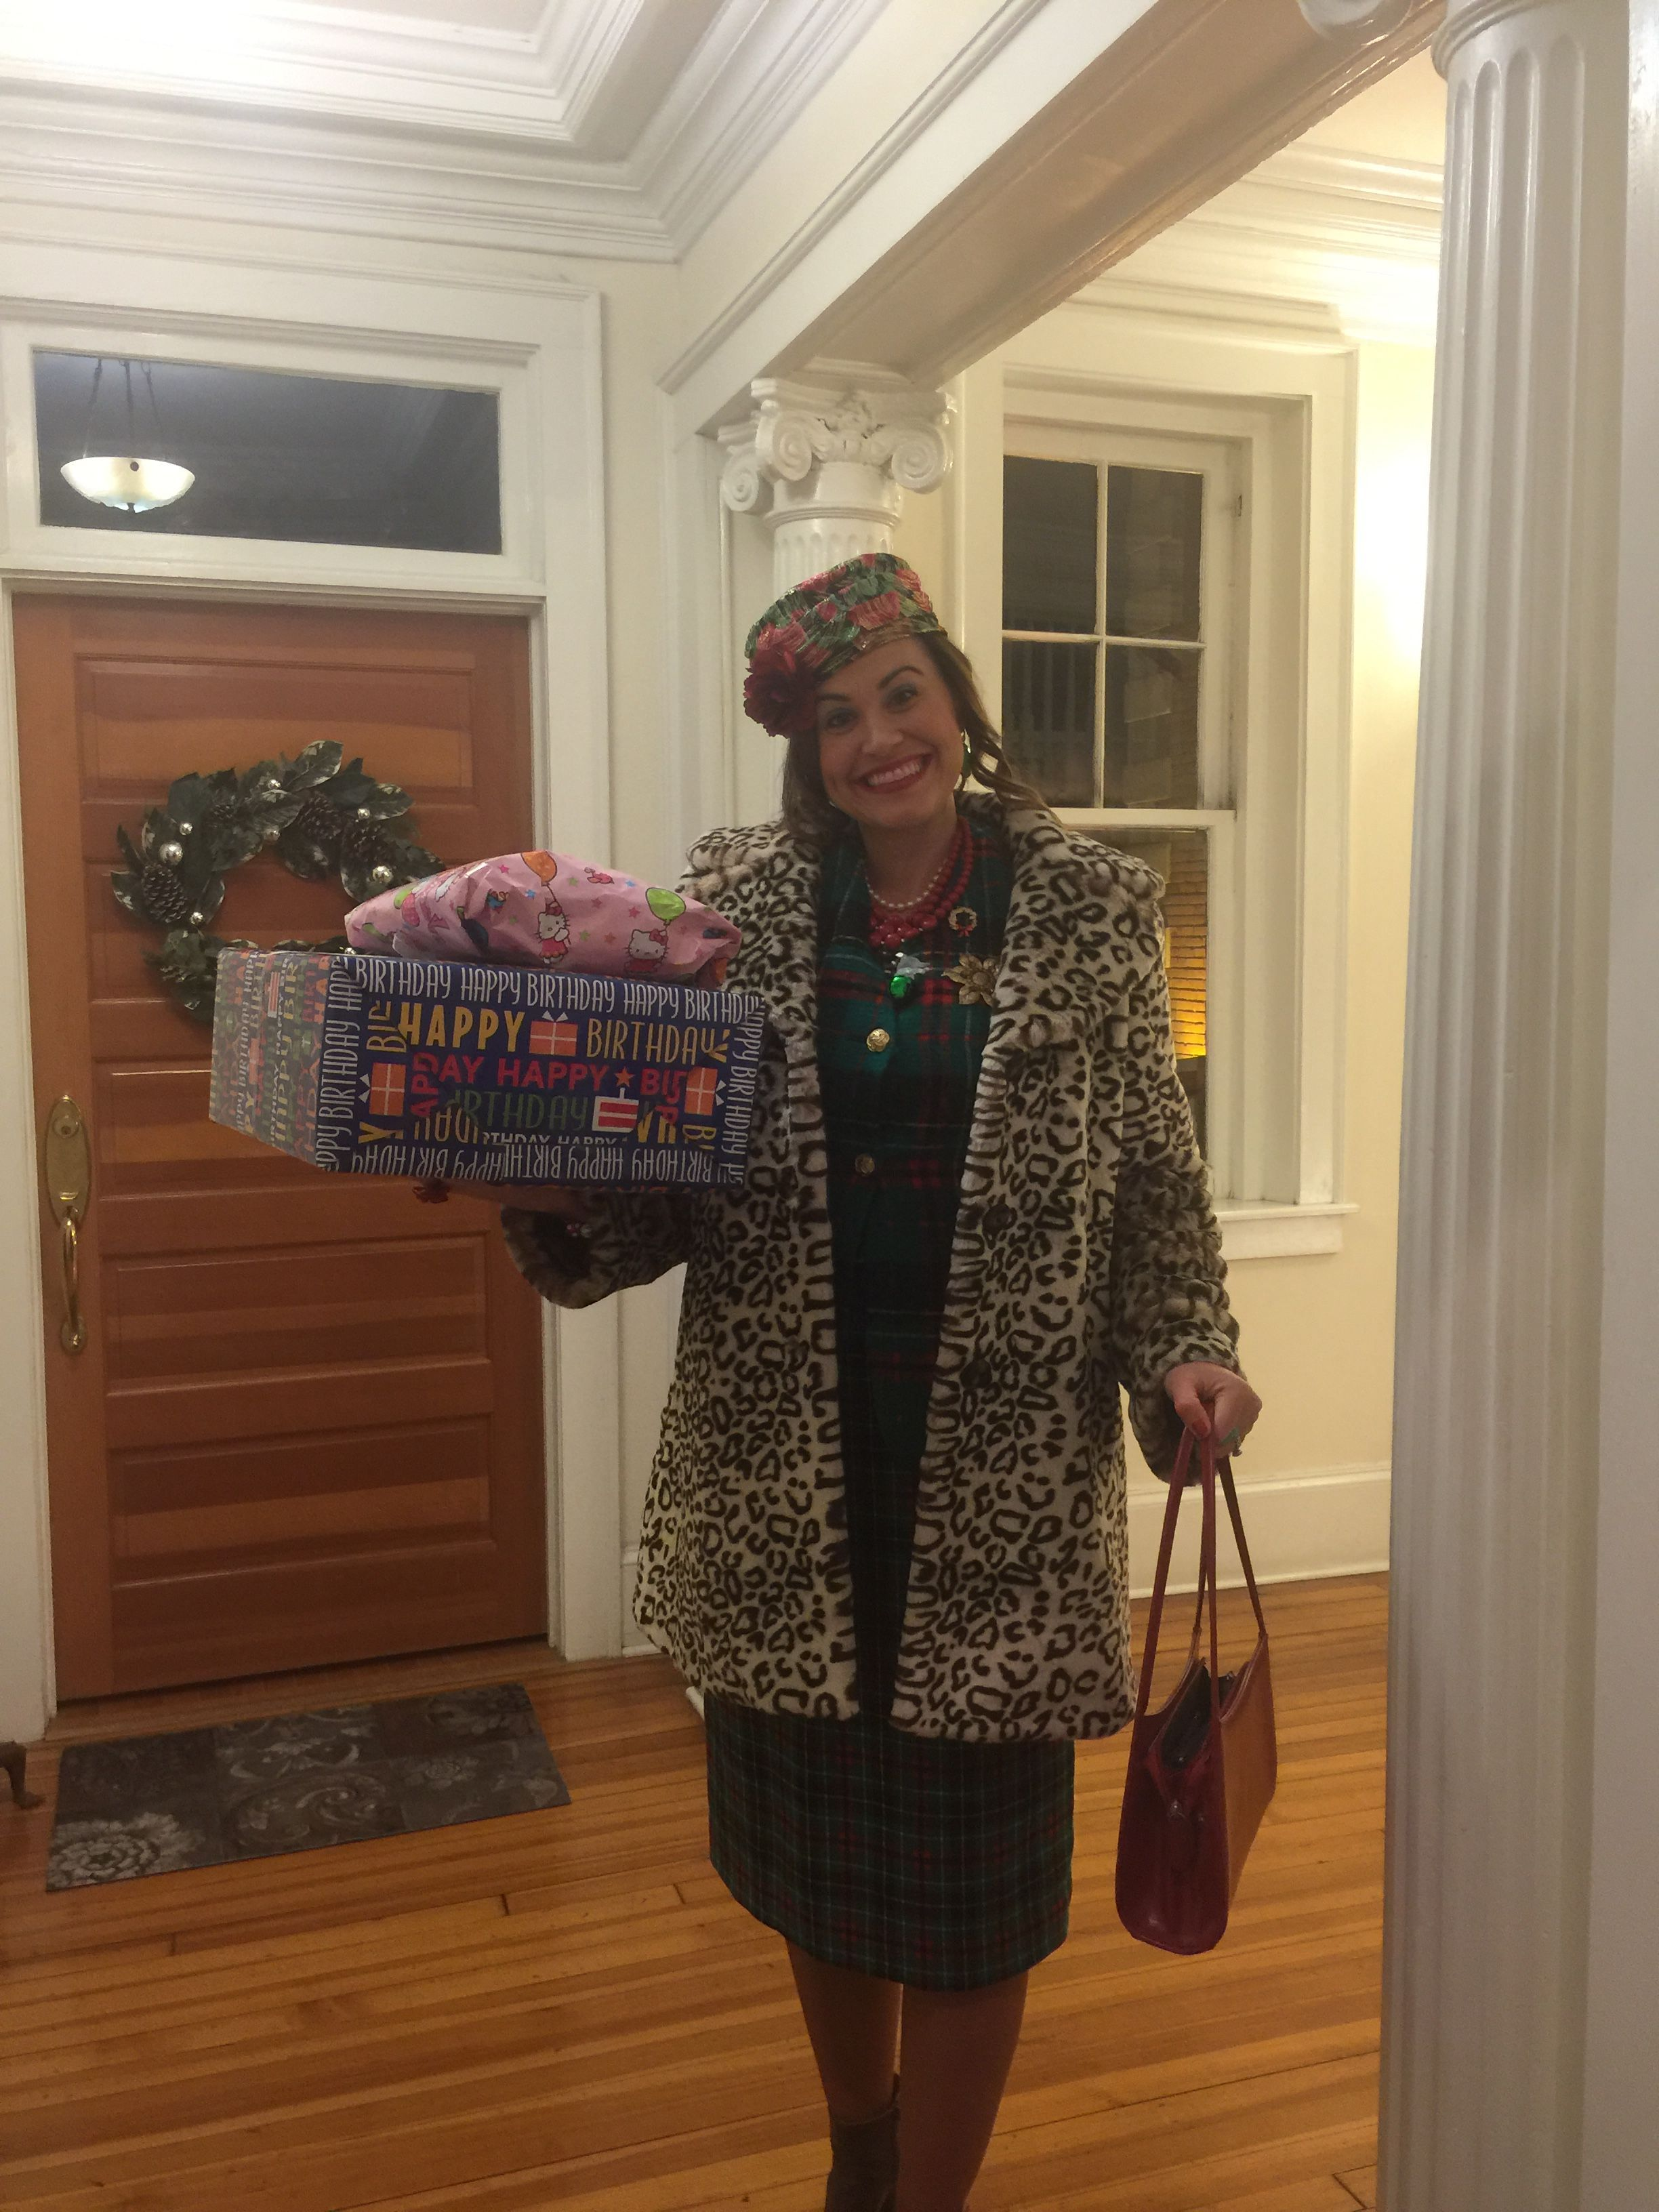 National Lampoons Christmas Vacation, Aunt Bethany